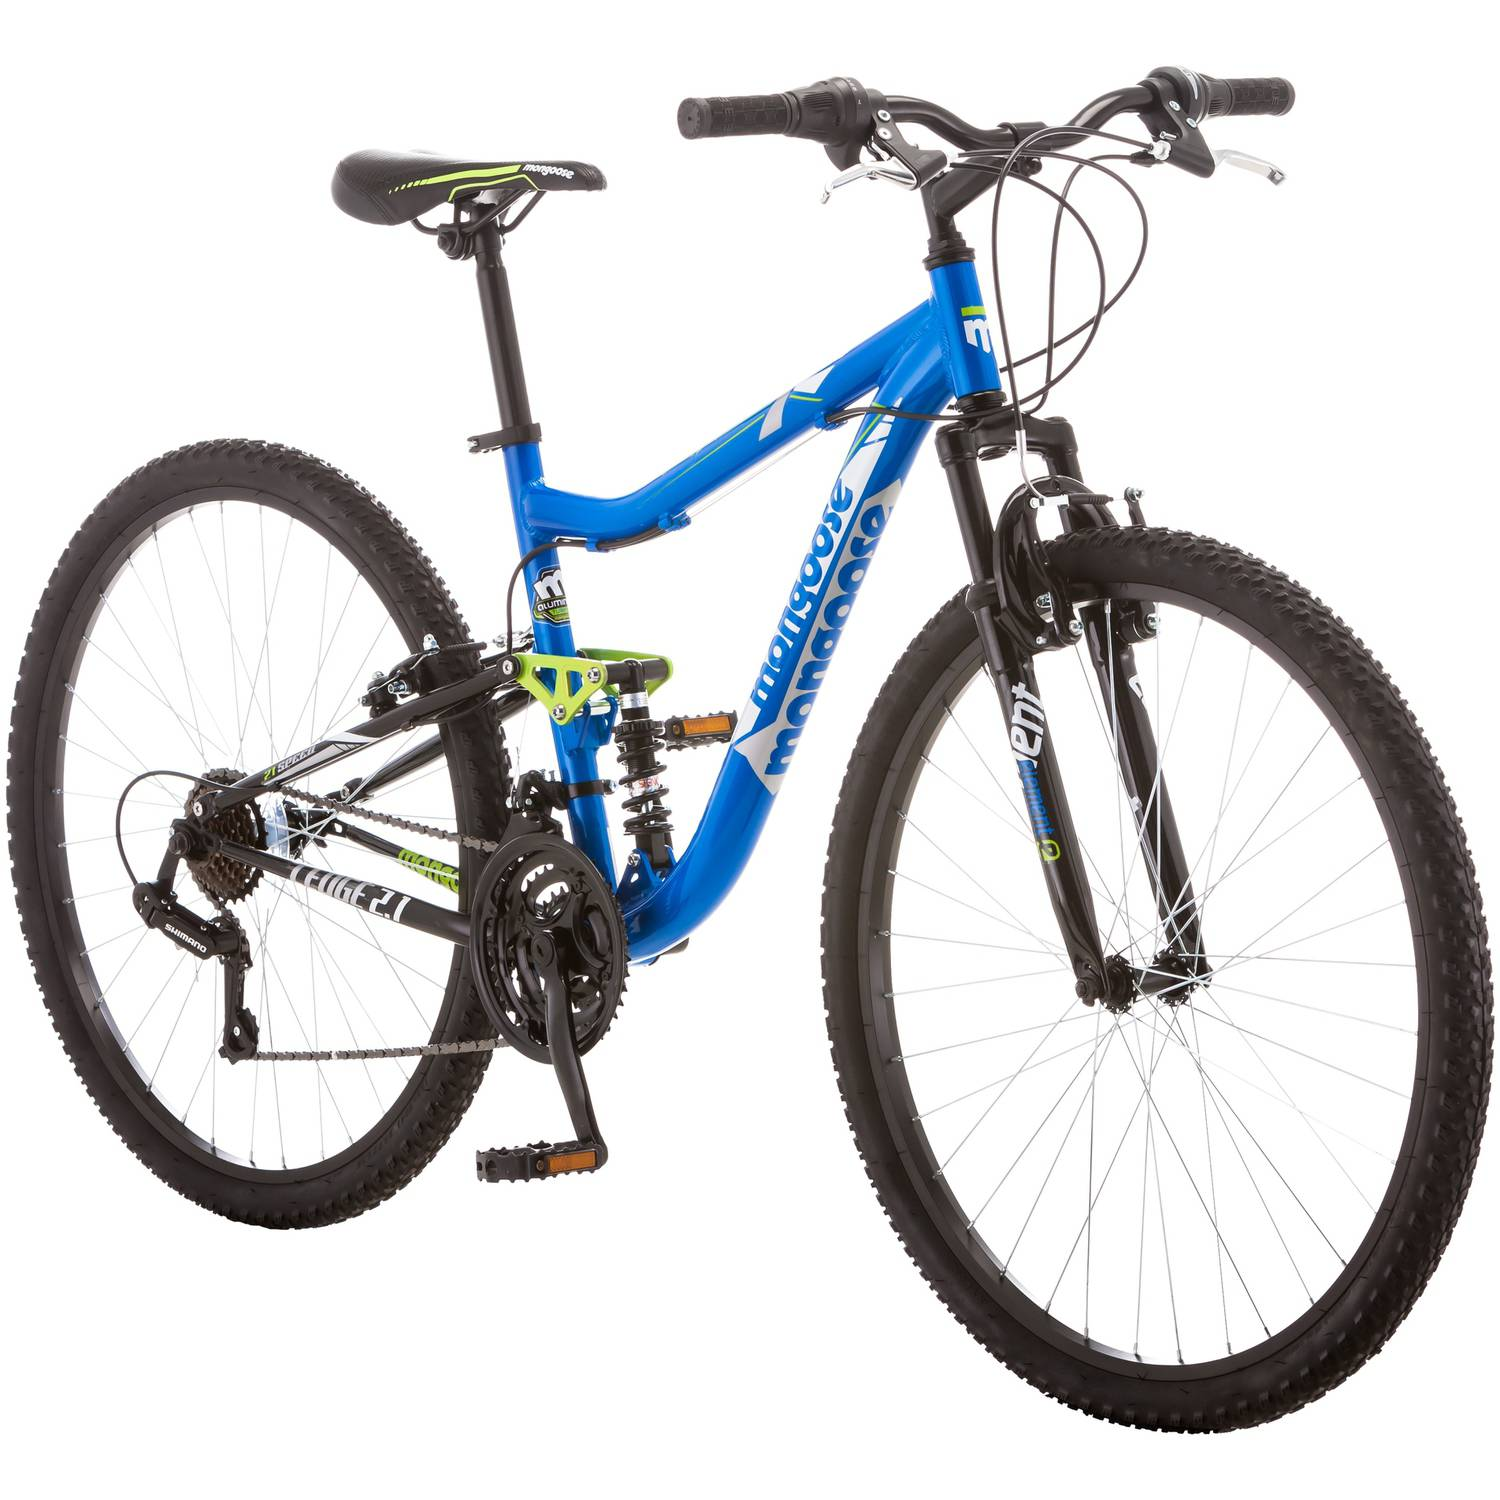 "27.5"" Mongoose Ledge 2.1 Men's Mountain Bike"